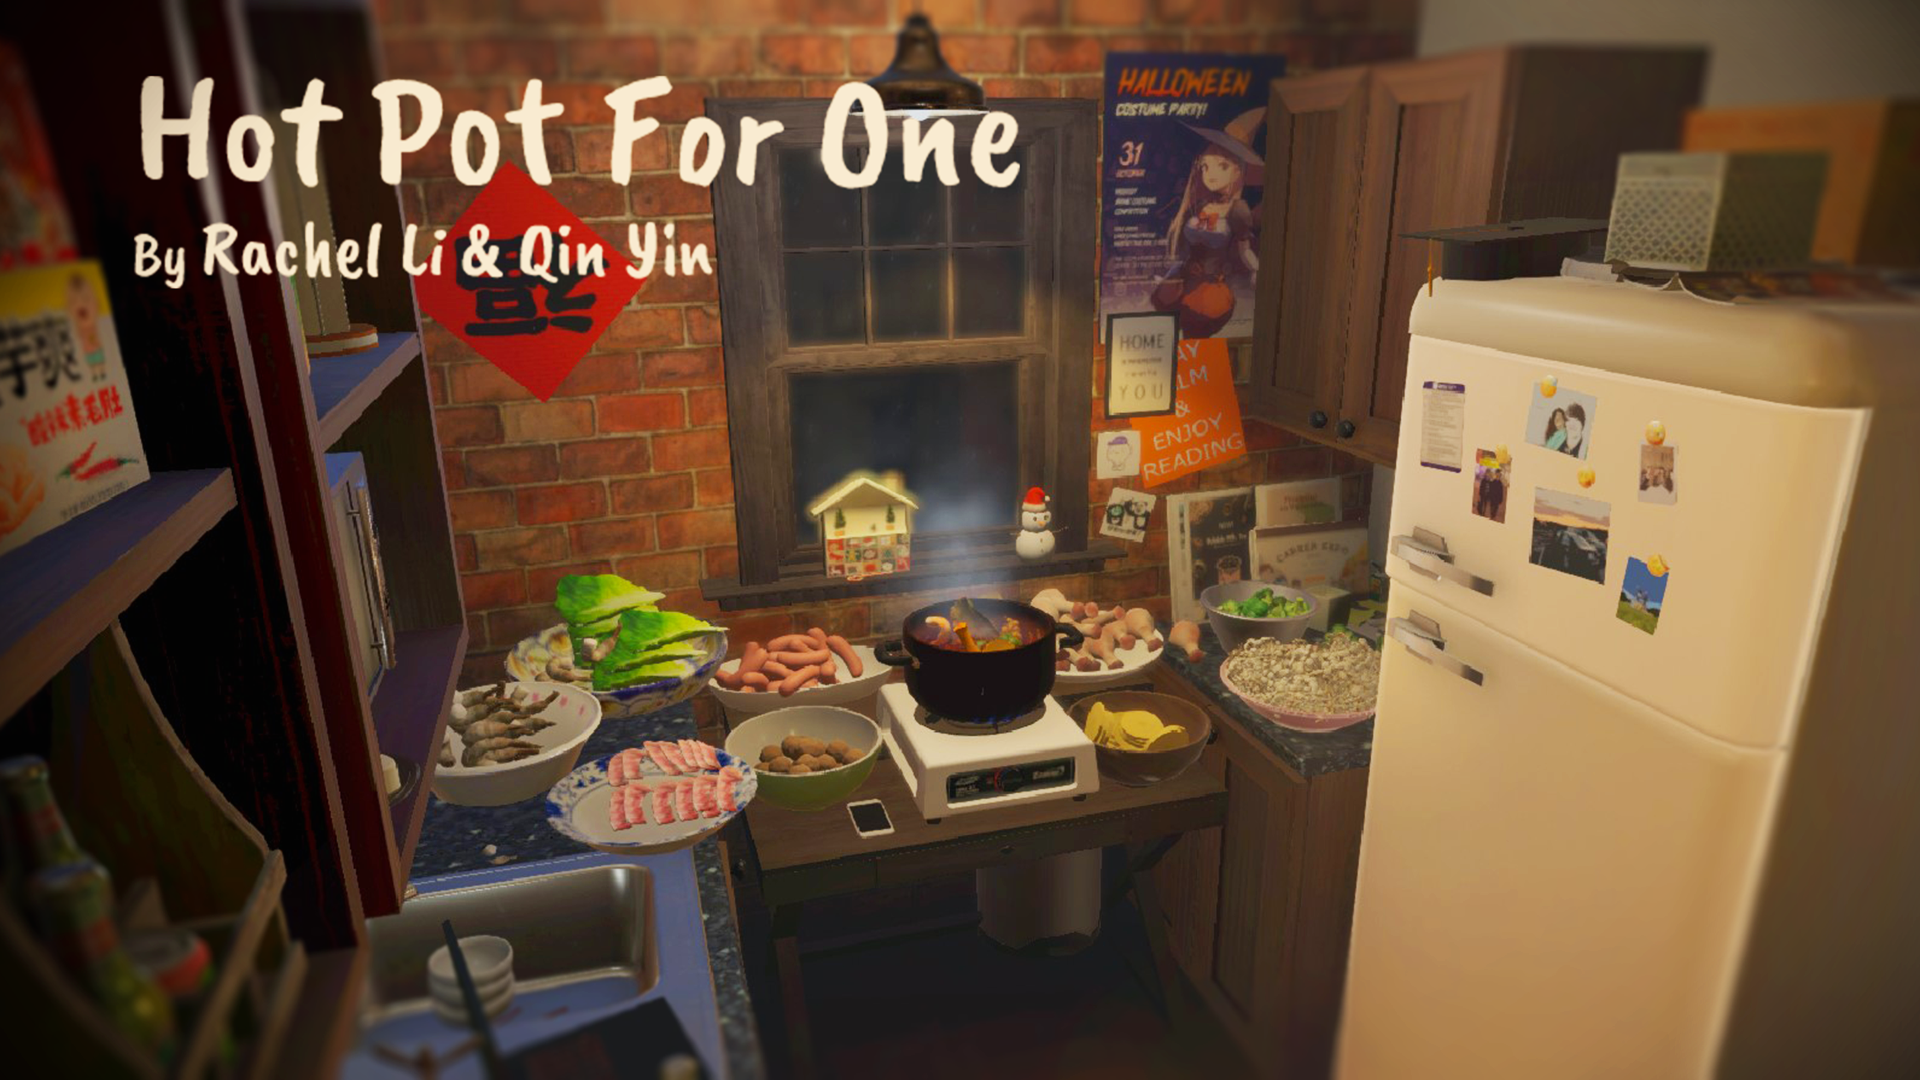 Hot Pot For One